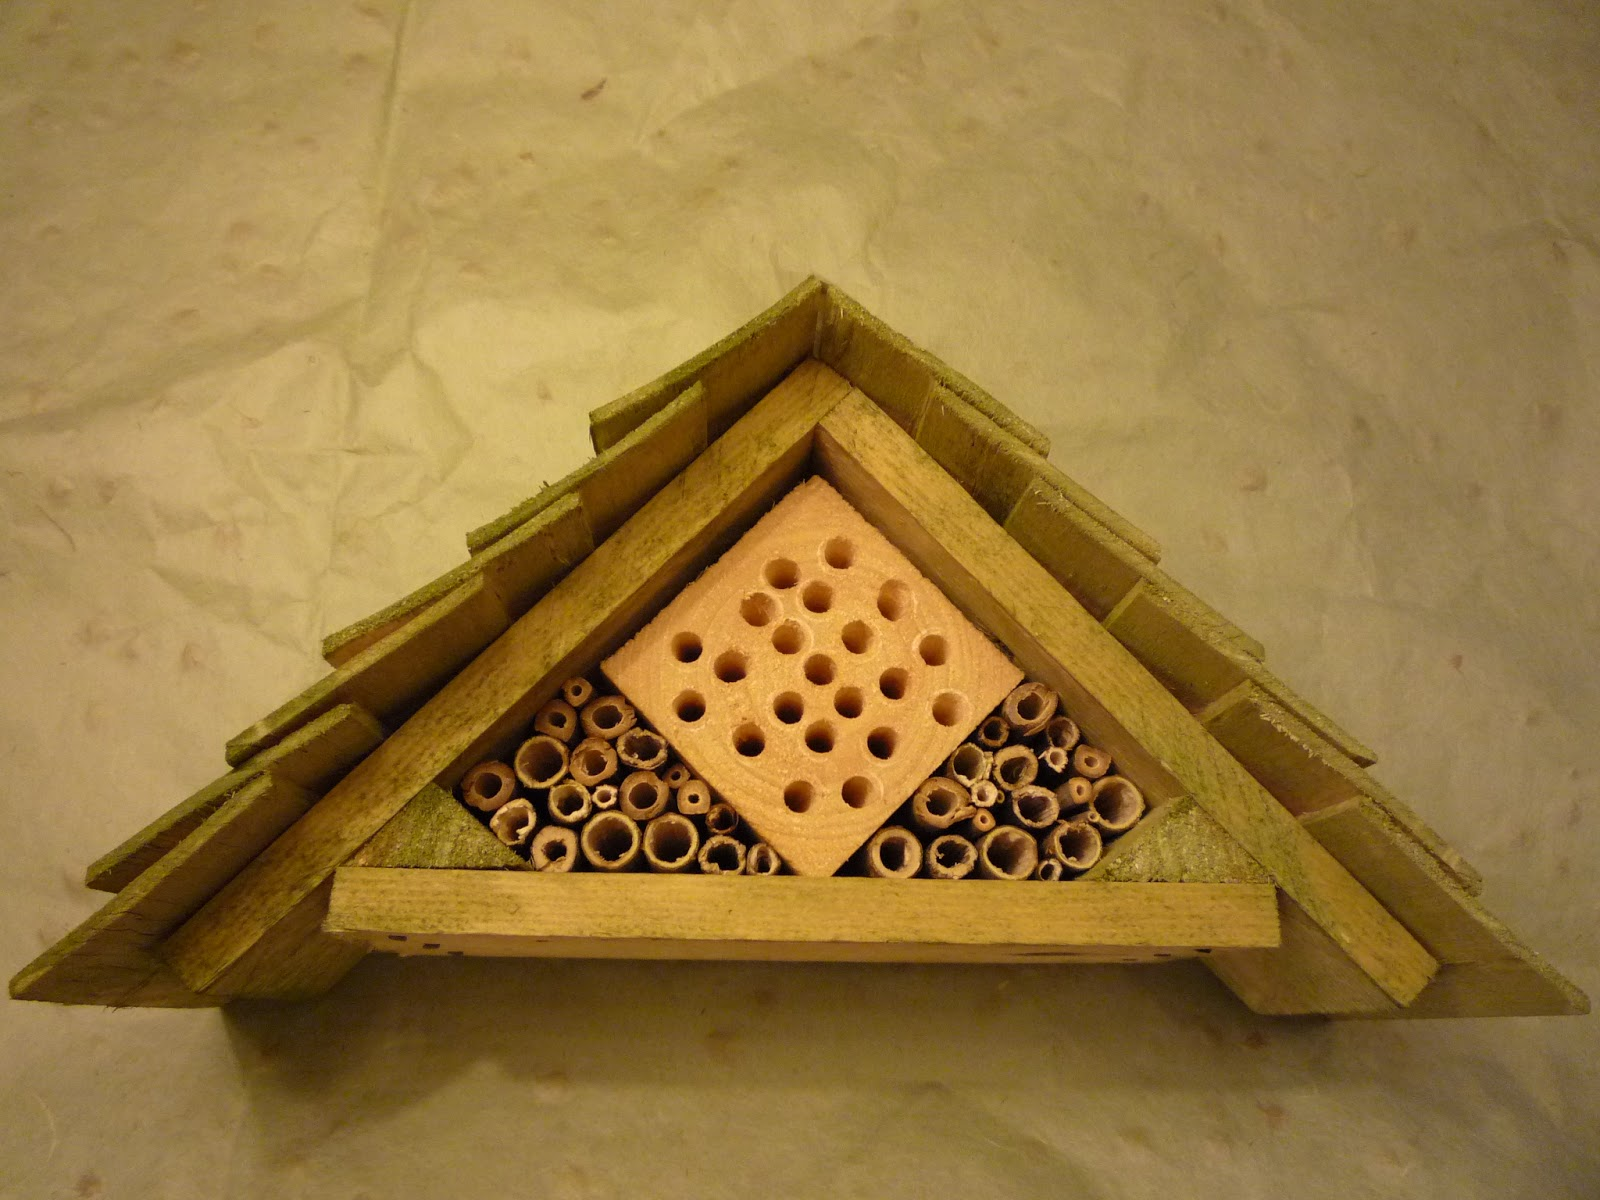 Using natural pigments on an insect hotel